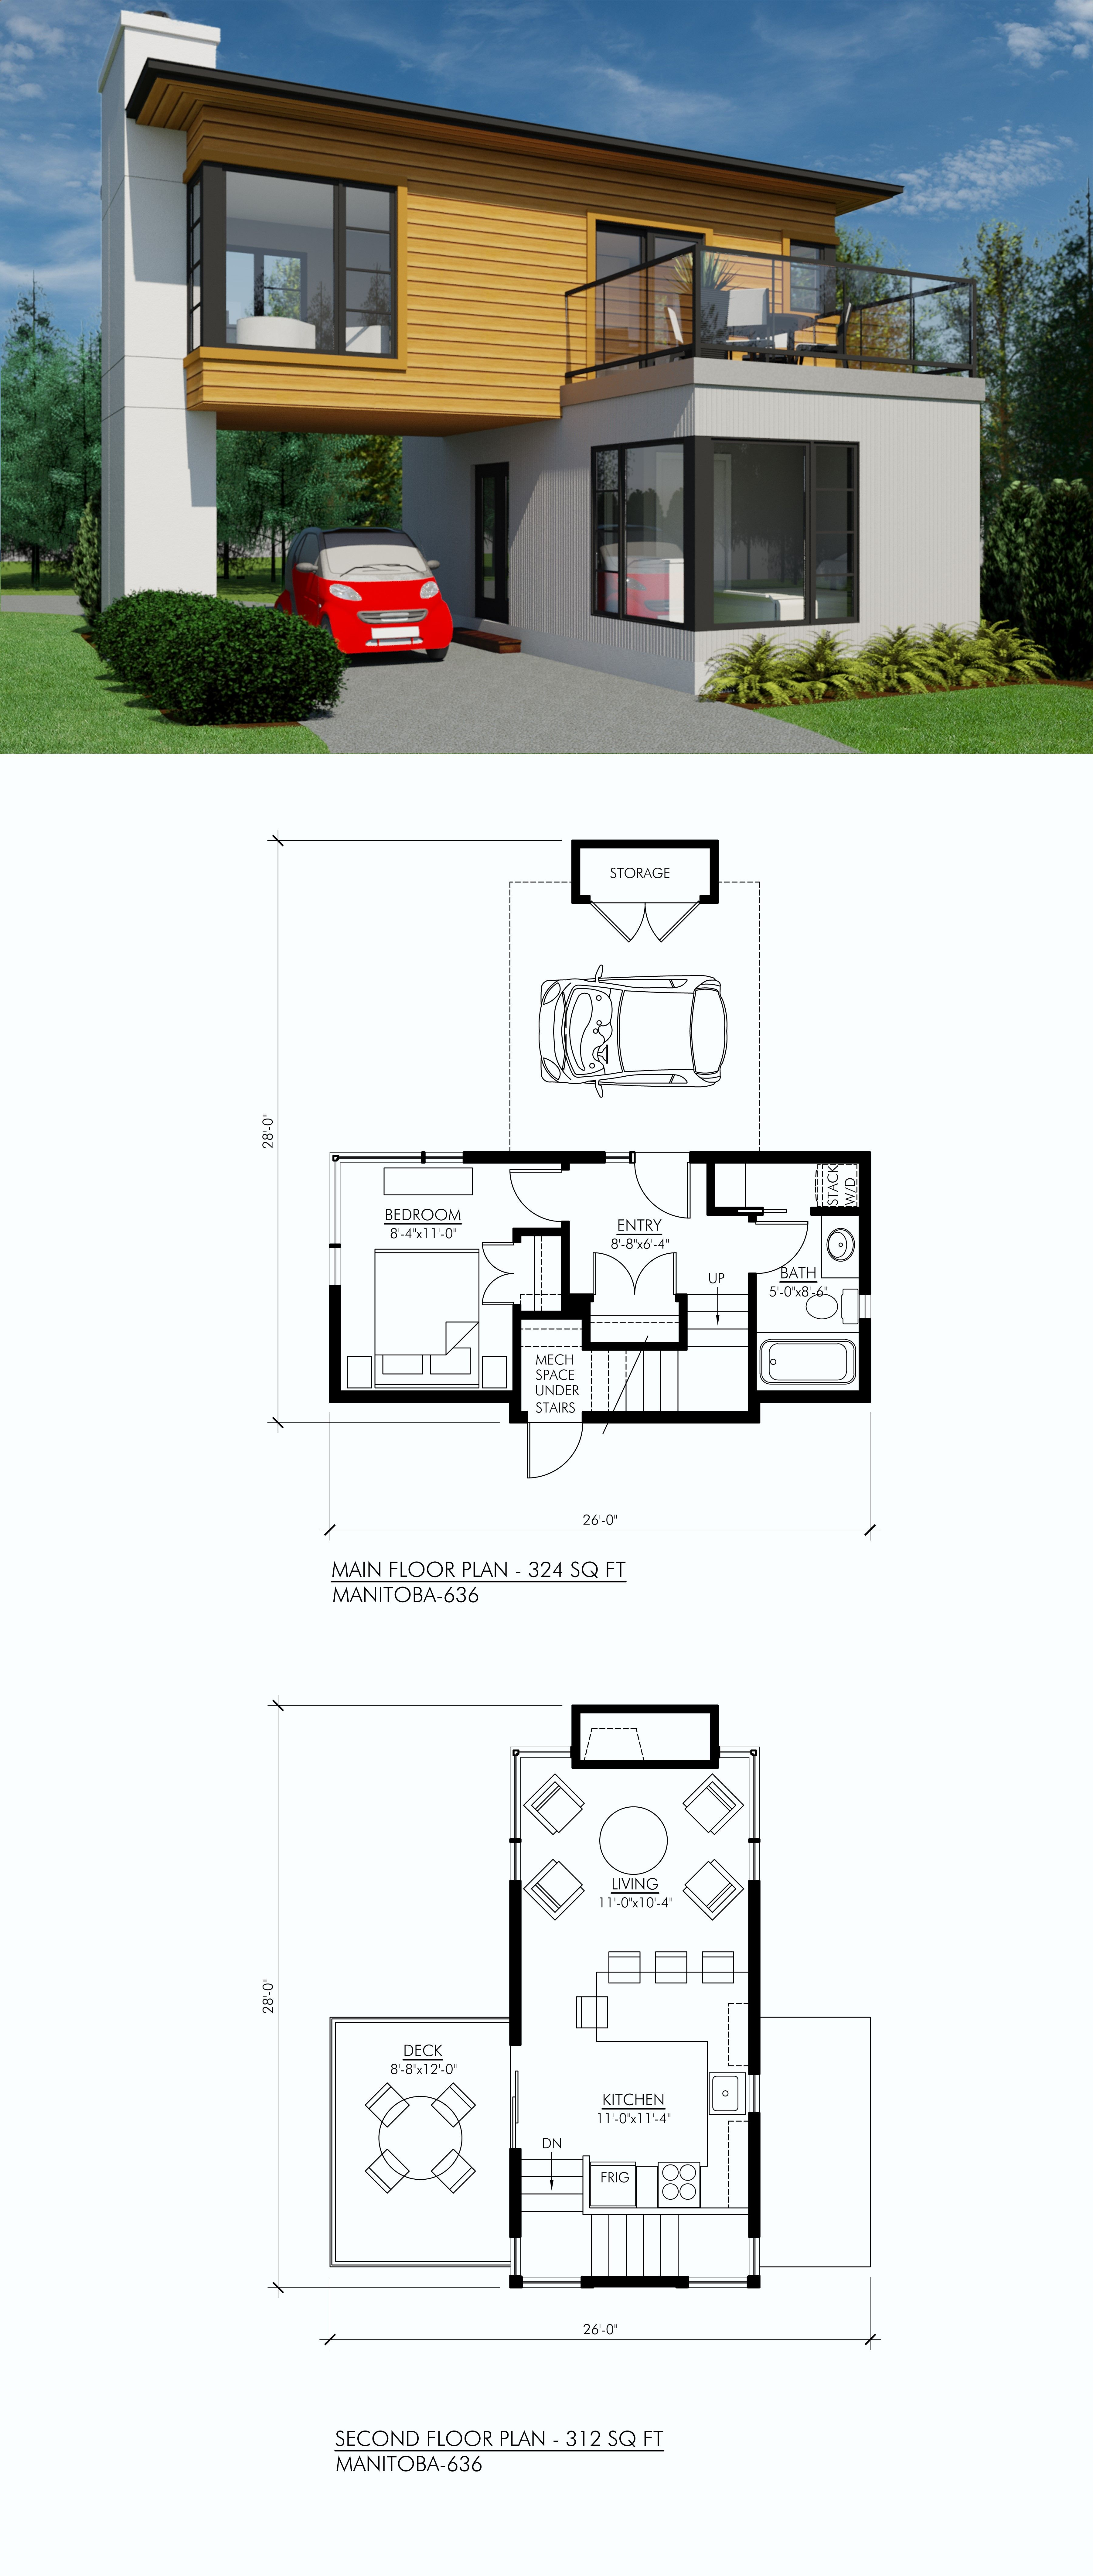 Container Homes Plans 636 Sq Ft 1 Bedroom 1 Bath Who Else Wants Simple Step By Step Pl Container House Plans Building A Container Home Small House Design